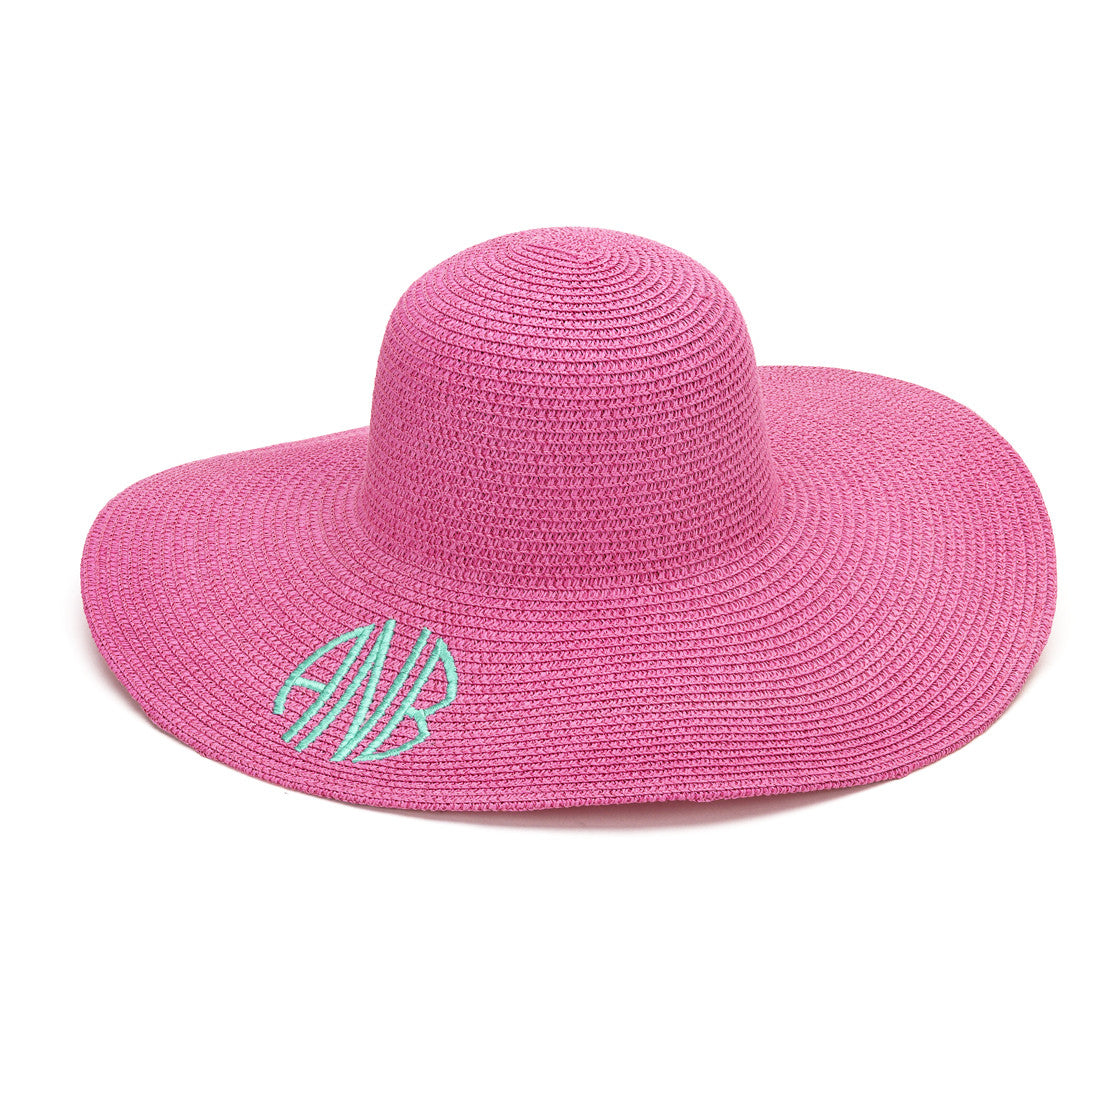 Floppy Hat - Hot Pink - Ciao Bella Boutique